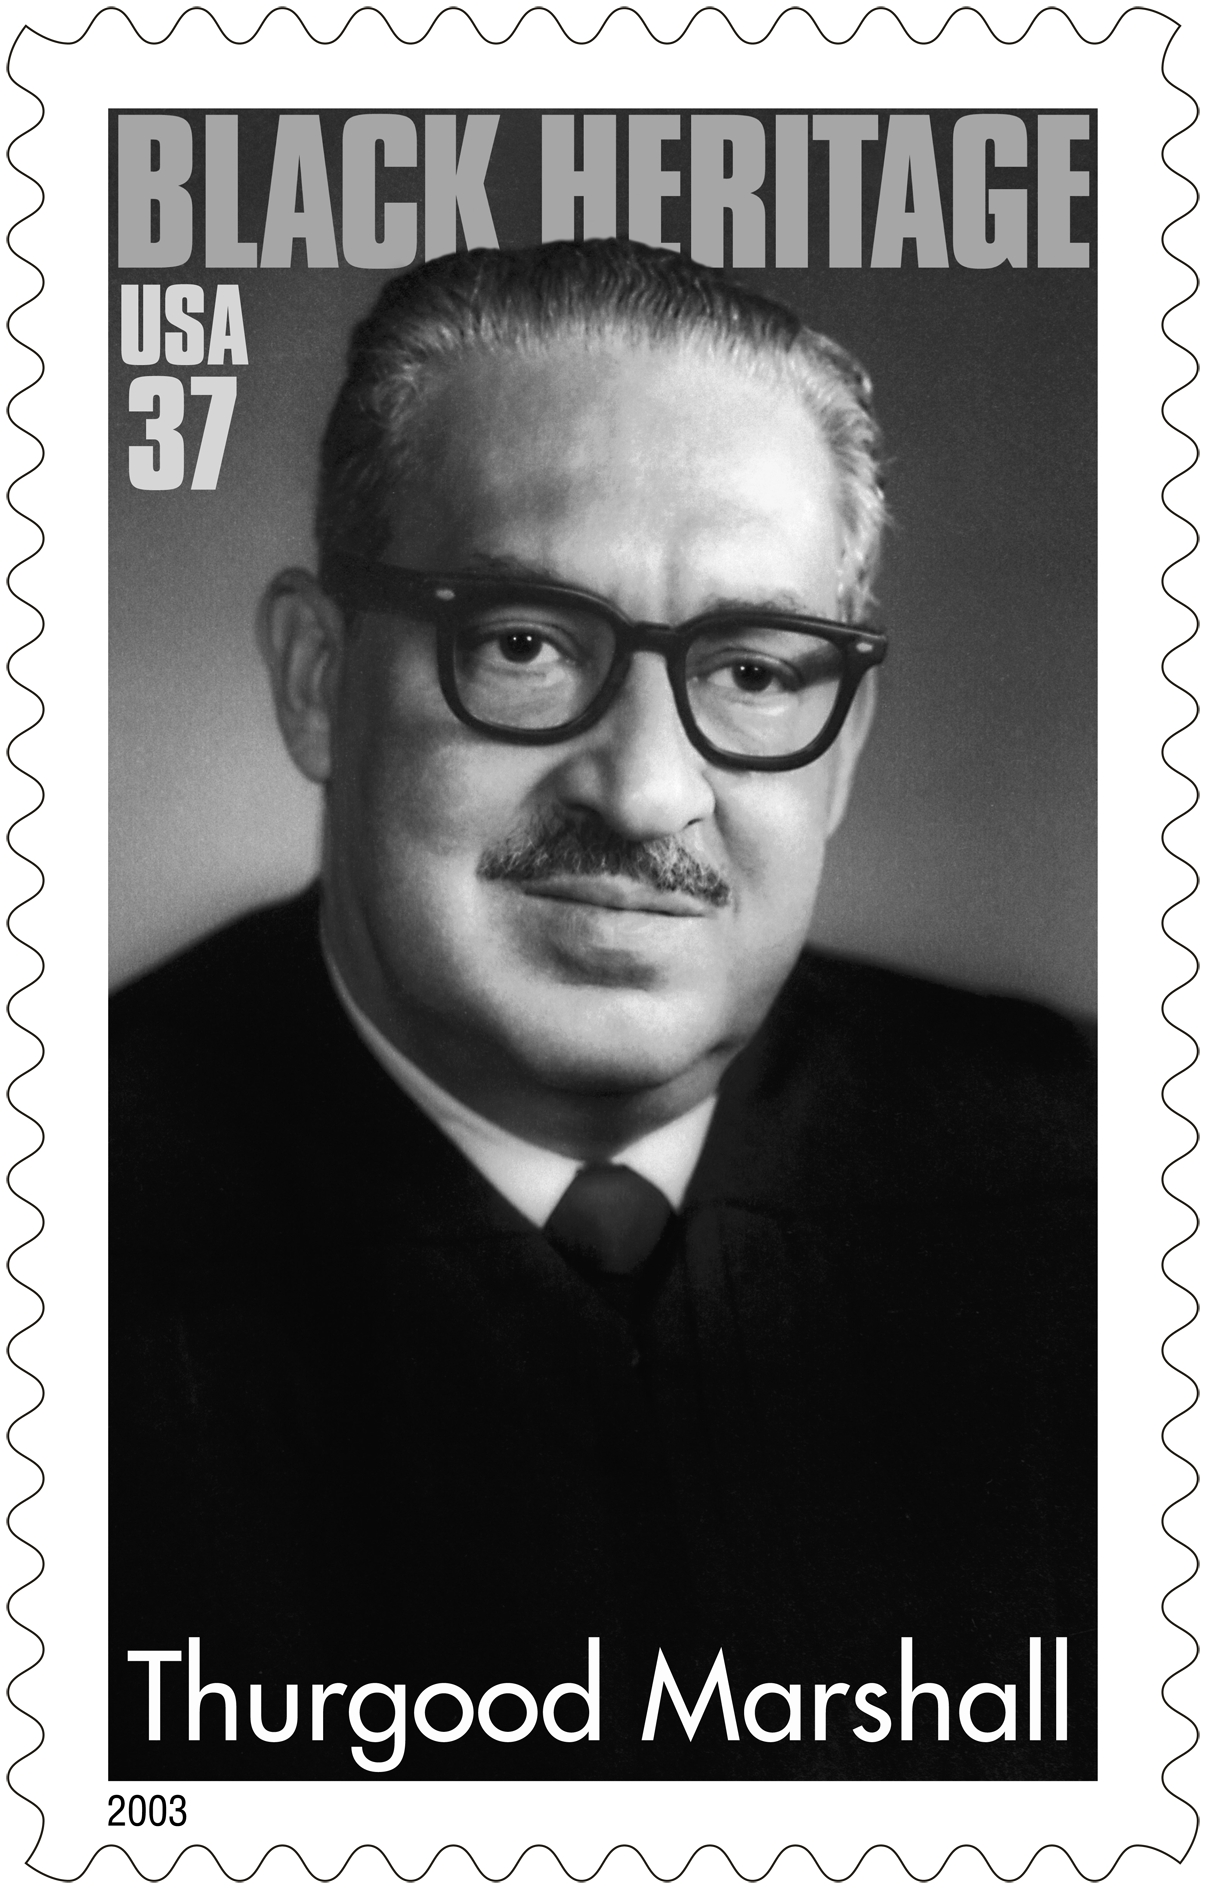 thurgood marshall essay thurgood marshall civil rights activist  african american stamp facts people the birmingham times usps03sta019a thurgood marshall